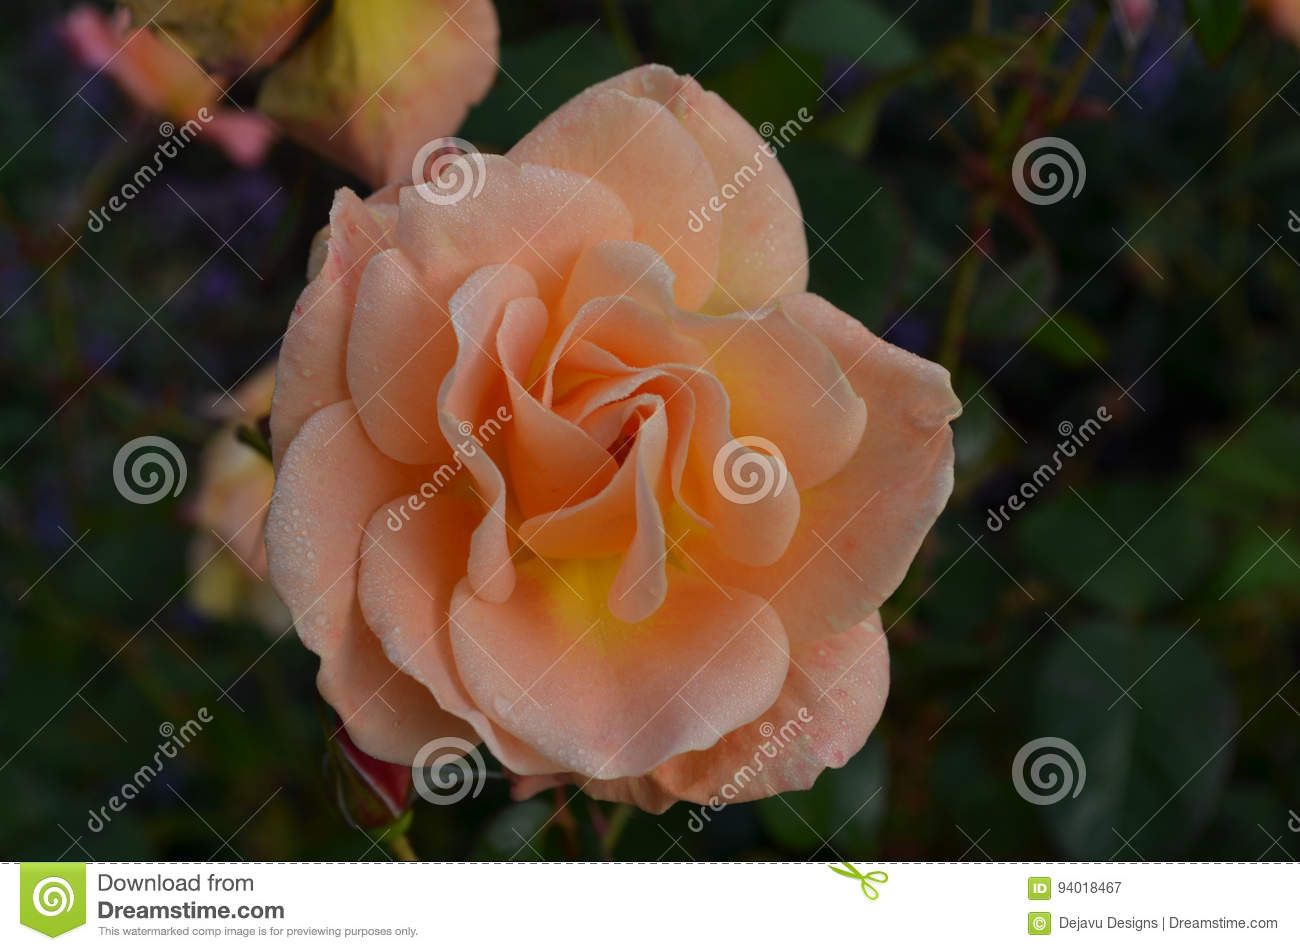 Pale Peach Flowering Rose Blossom in een Tuin